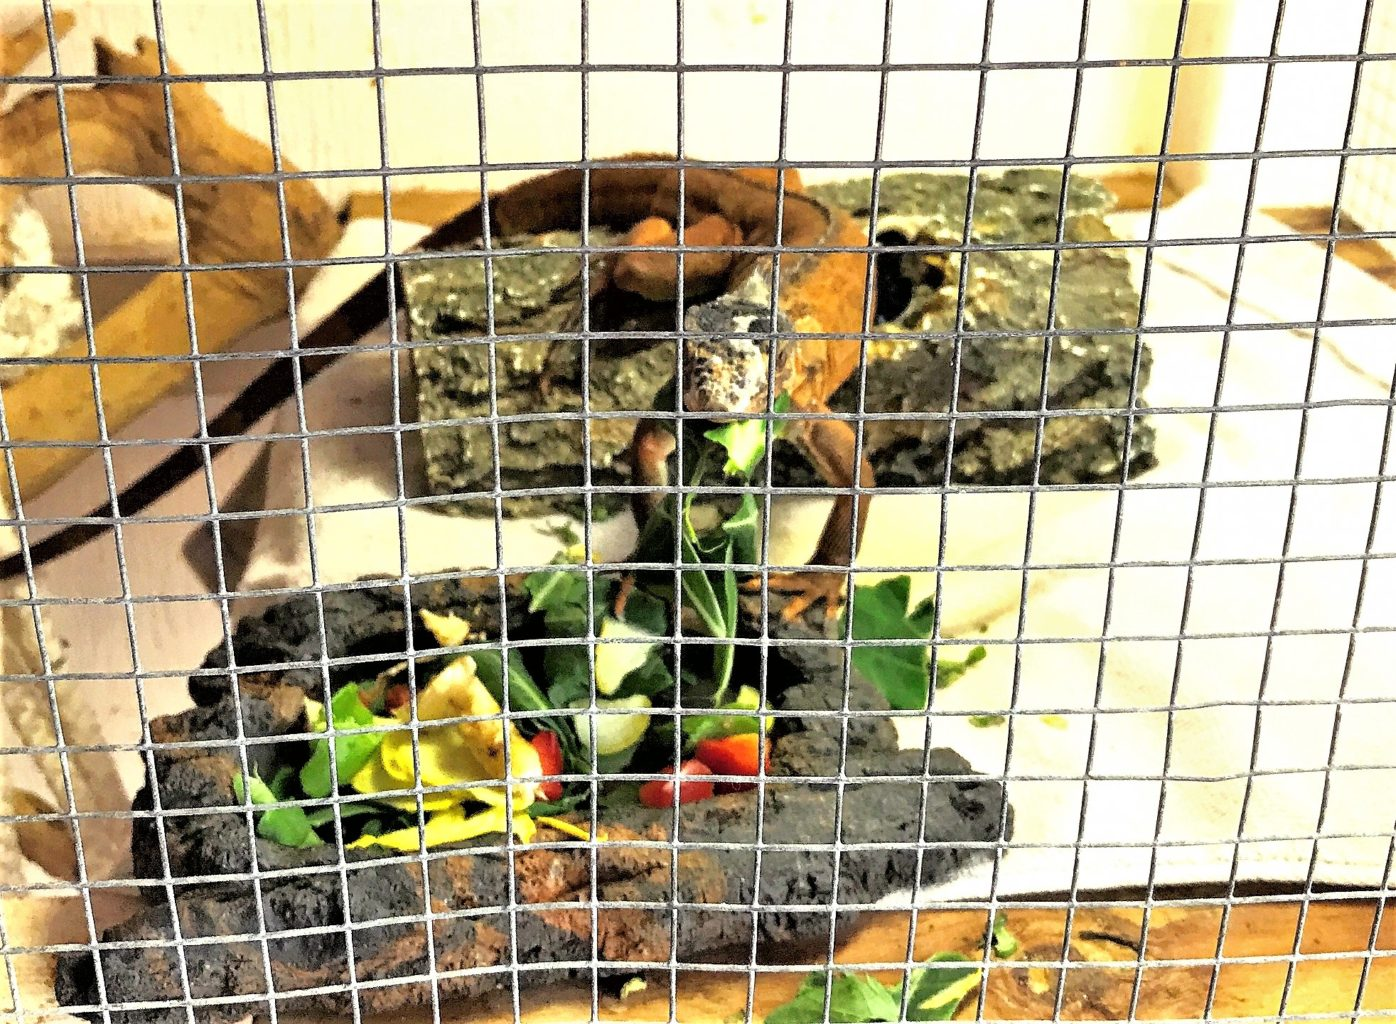 A reddish green iguana inside a cage, standing at a salad plate, with greens in his mouth.